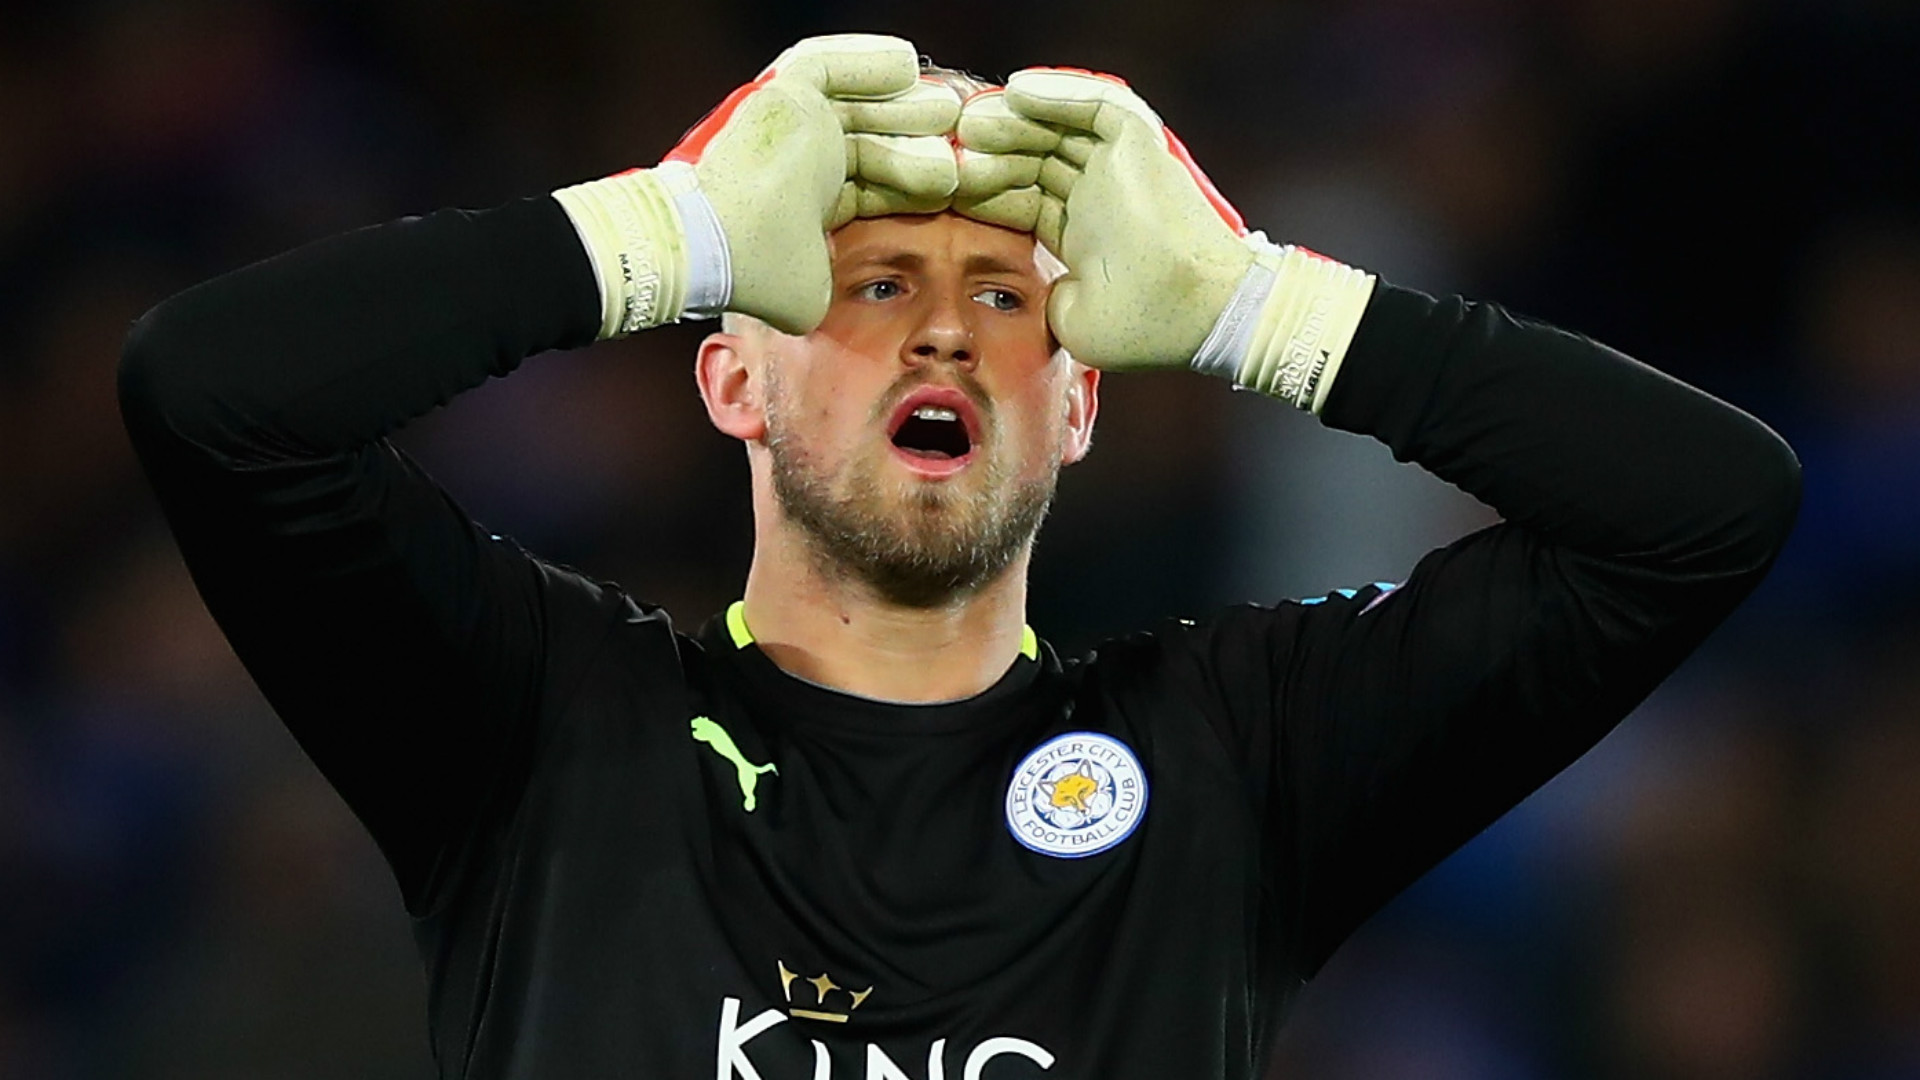 Thanks for the memories! Leicester's fairytale is finally over but what a magical journey it was